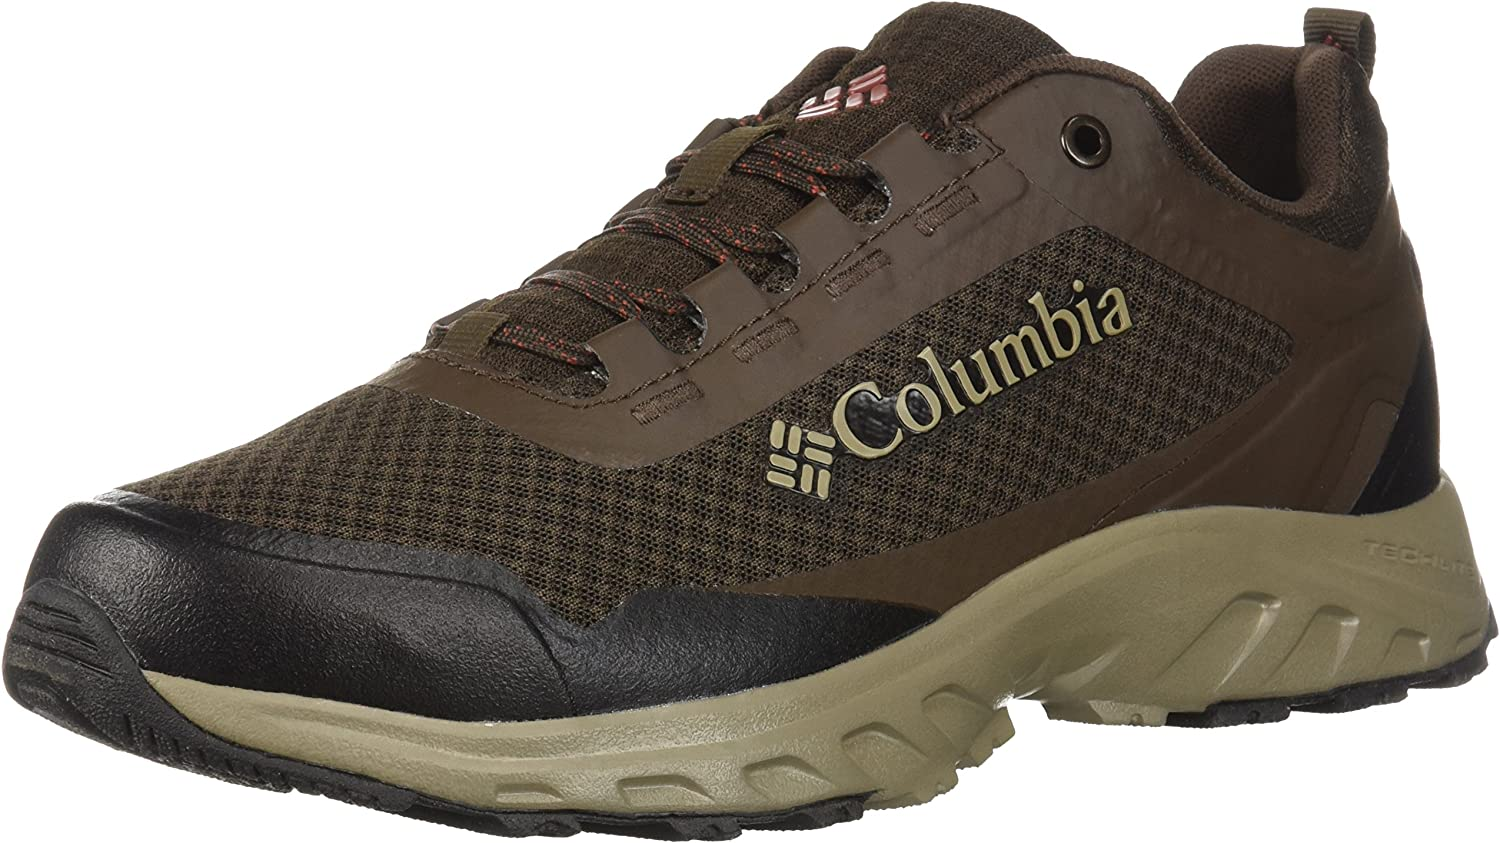 Columbia Men s IRRIGON Trail Breeze Hiking Boot